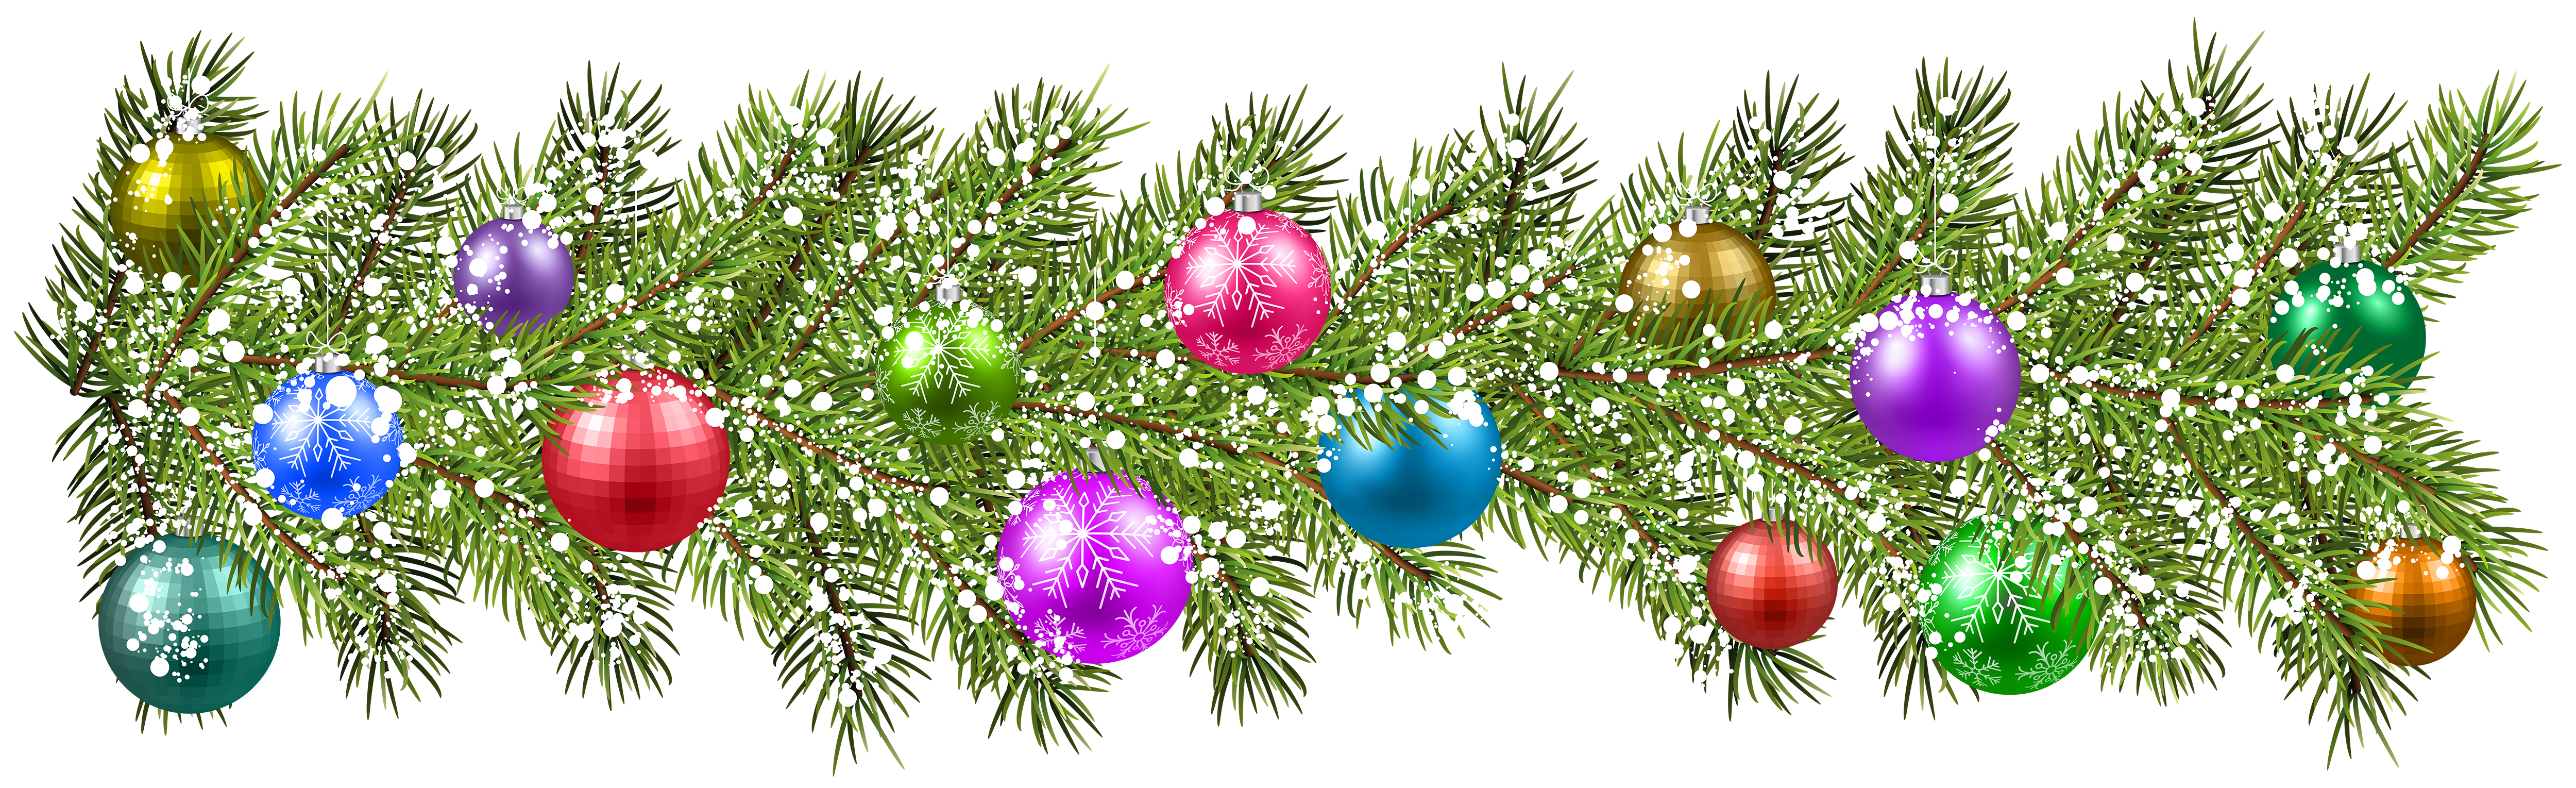 Christmas branches clipart clip art library download Christmas Pine Branches and Christmas Balls PNG Clip Art Image ... clip art library download